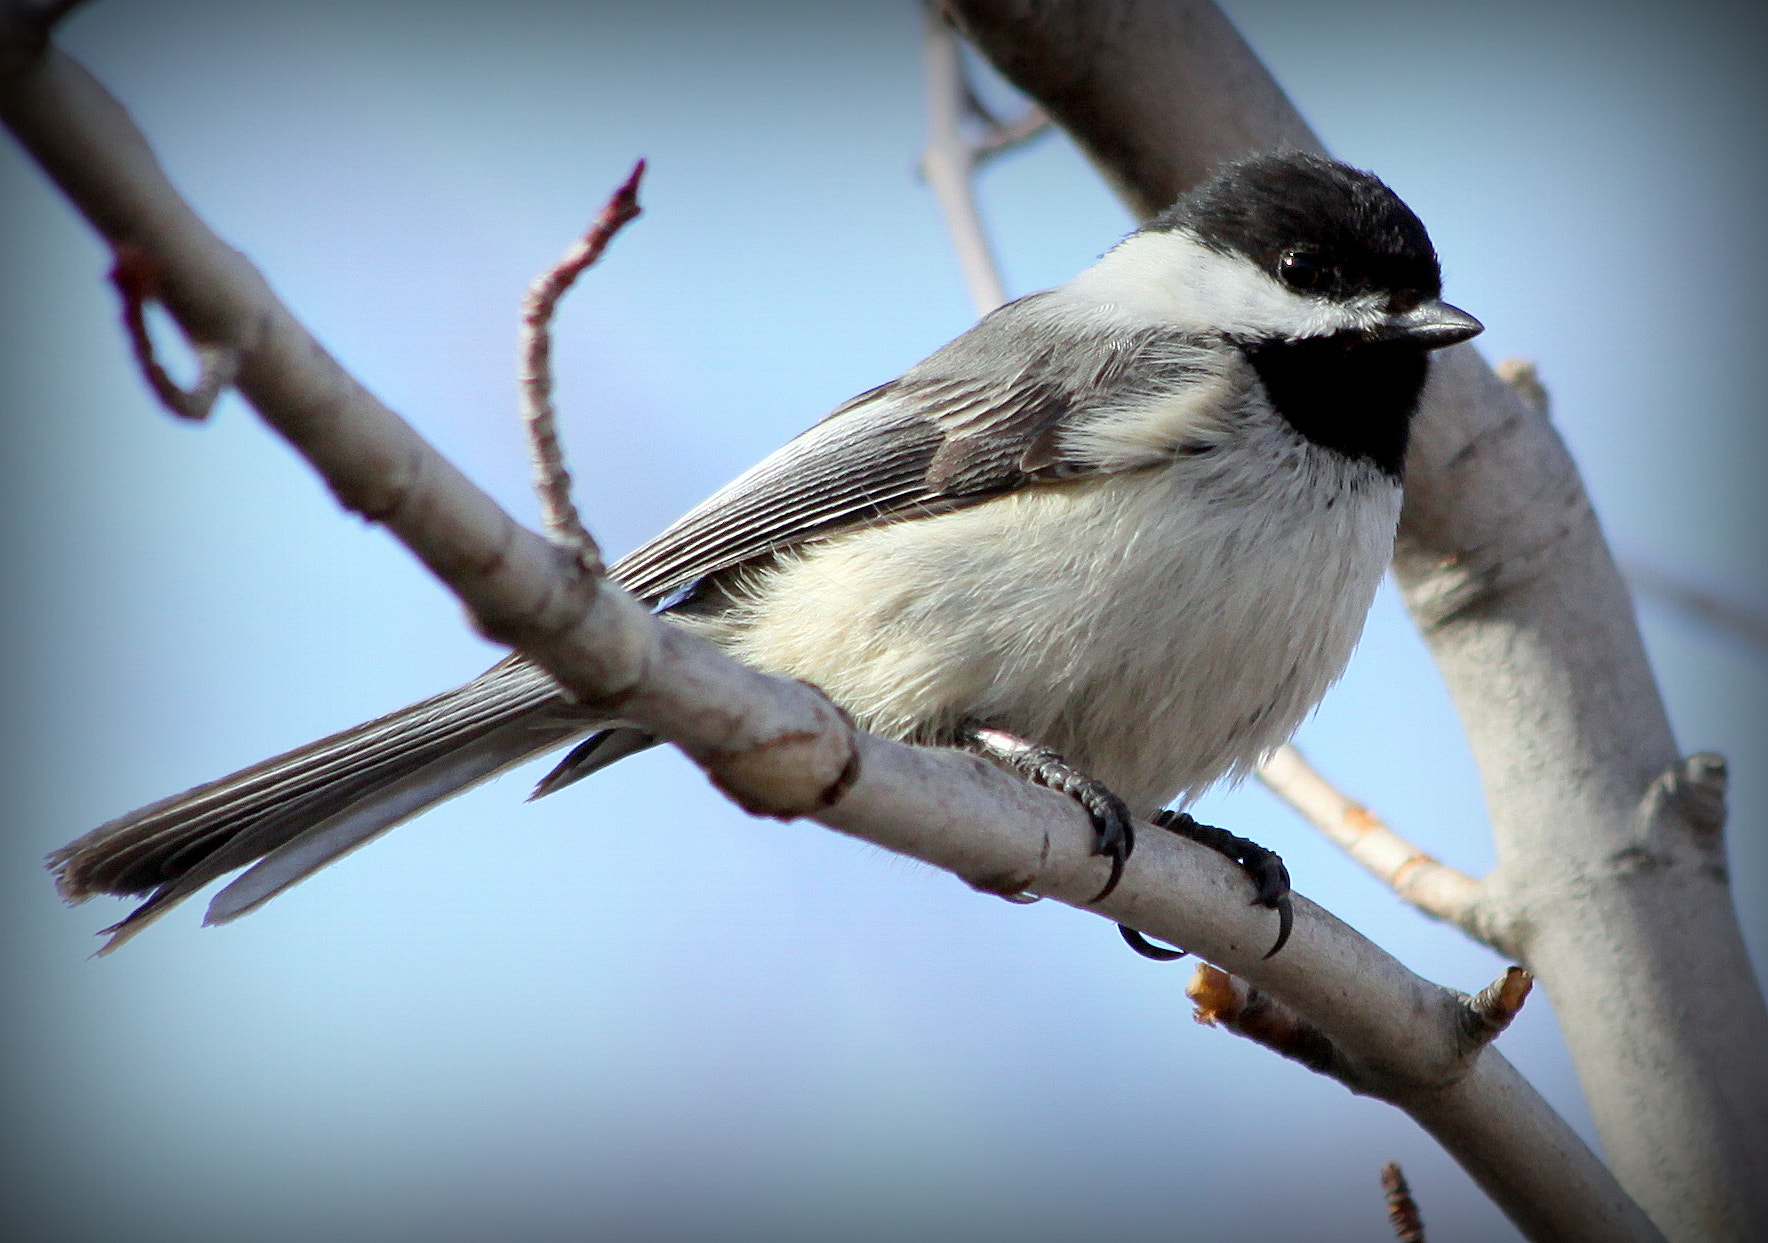 Photograph Black Capped Chickadee by Kevin Fechtelkotter on 500px